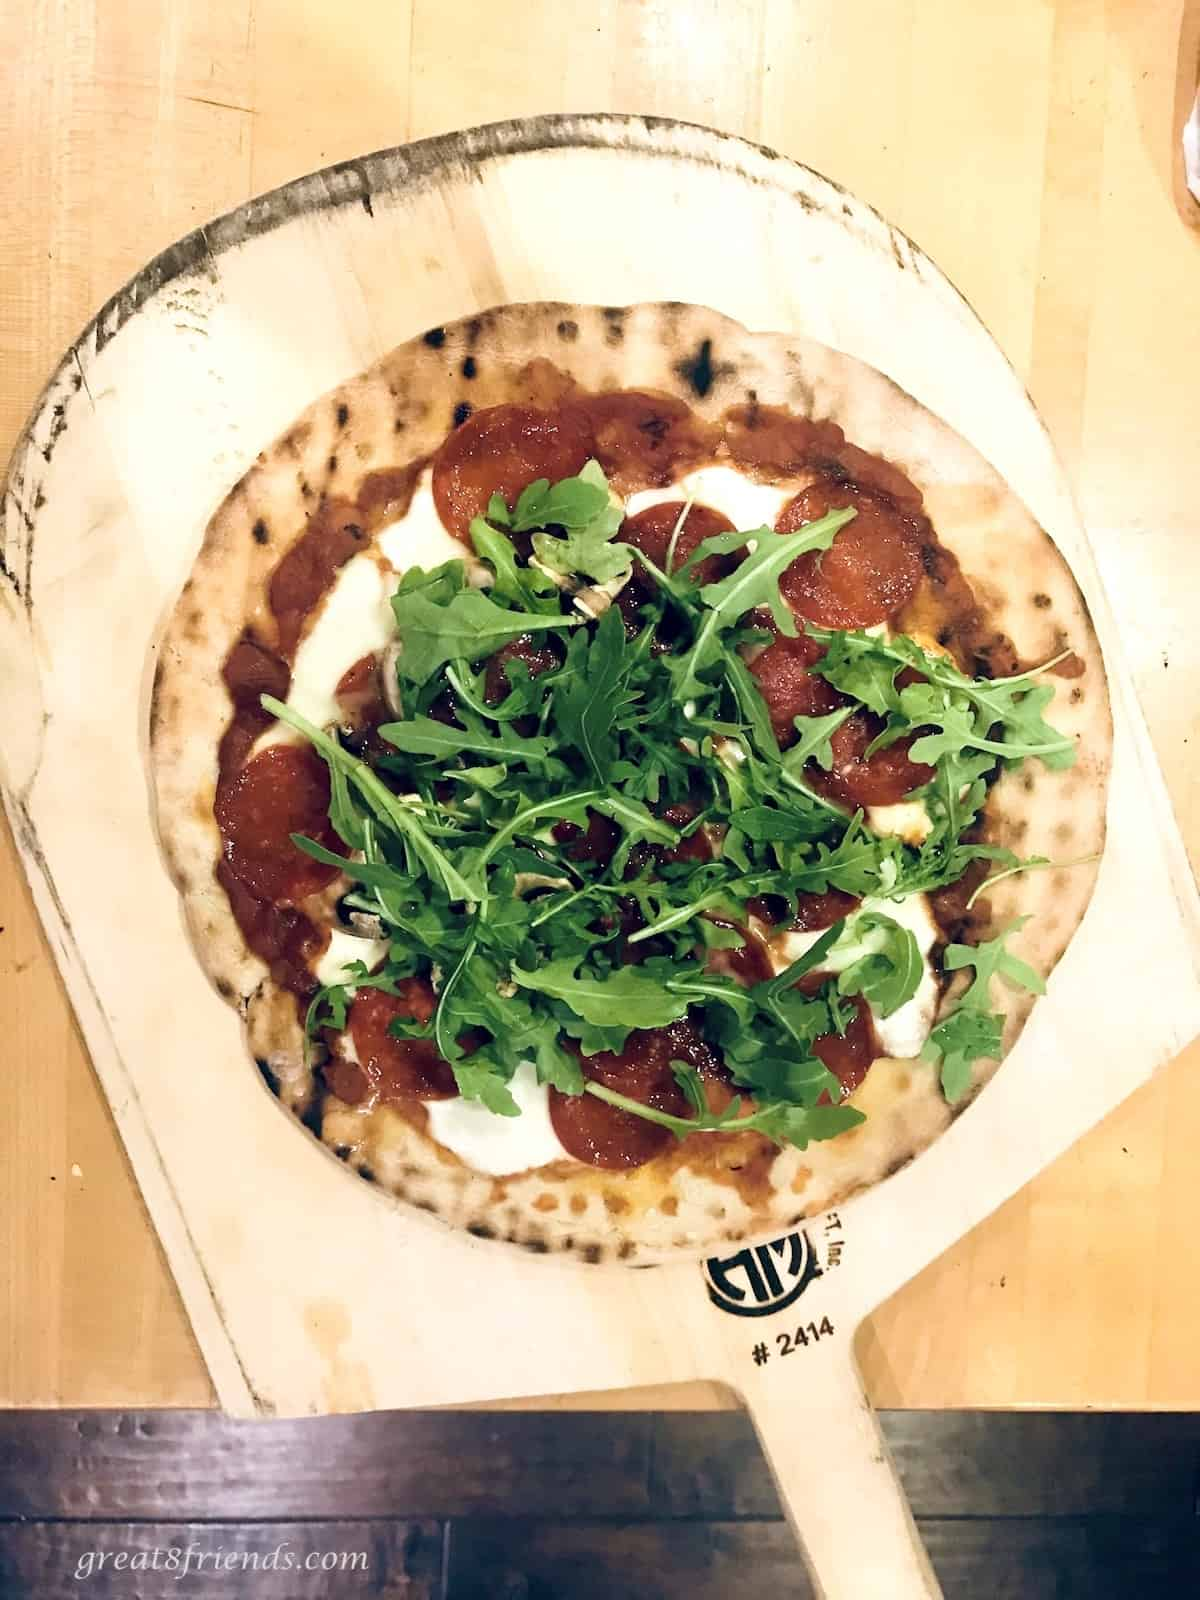 Grilled pizza with salami, cheese, pizza sauce, and arugula.